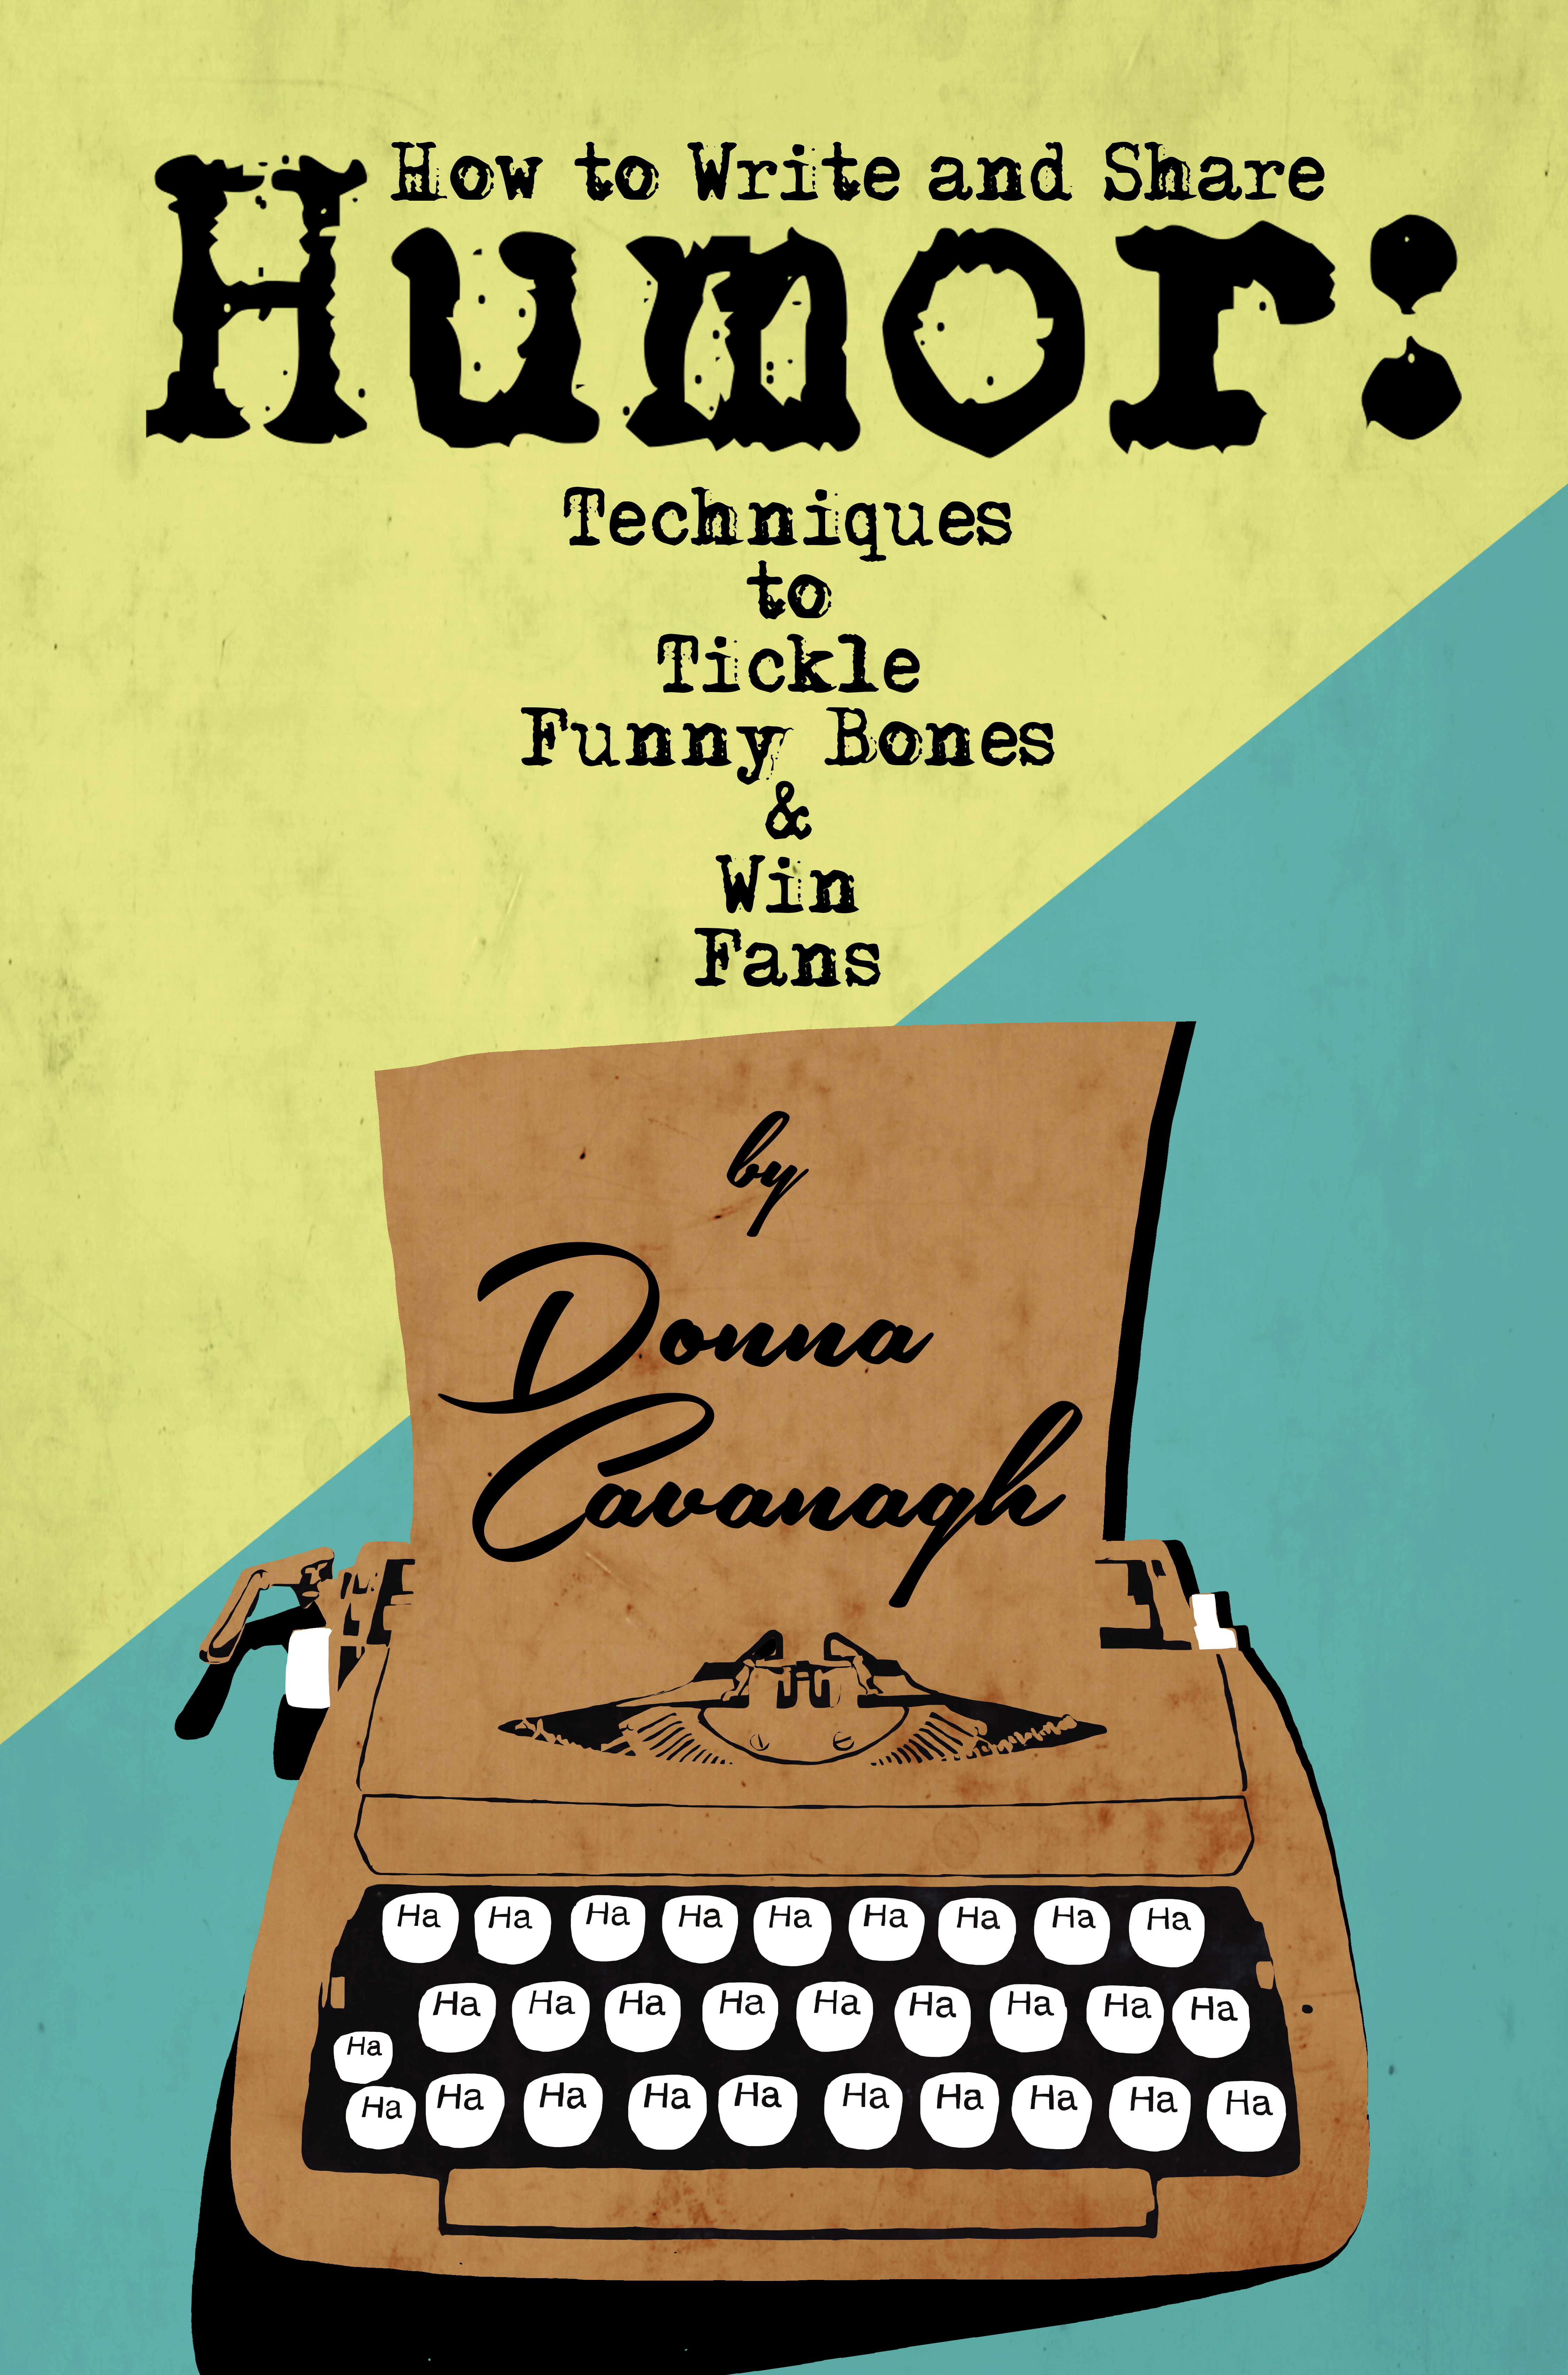 book of humorous essays Humor writing: how to think, write, speak, and be funnier  a free e-book of humor essays referenced in the videos a teacher who's a best-selling author and award.